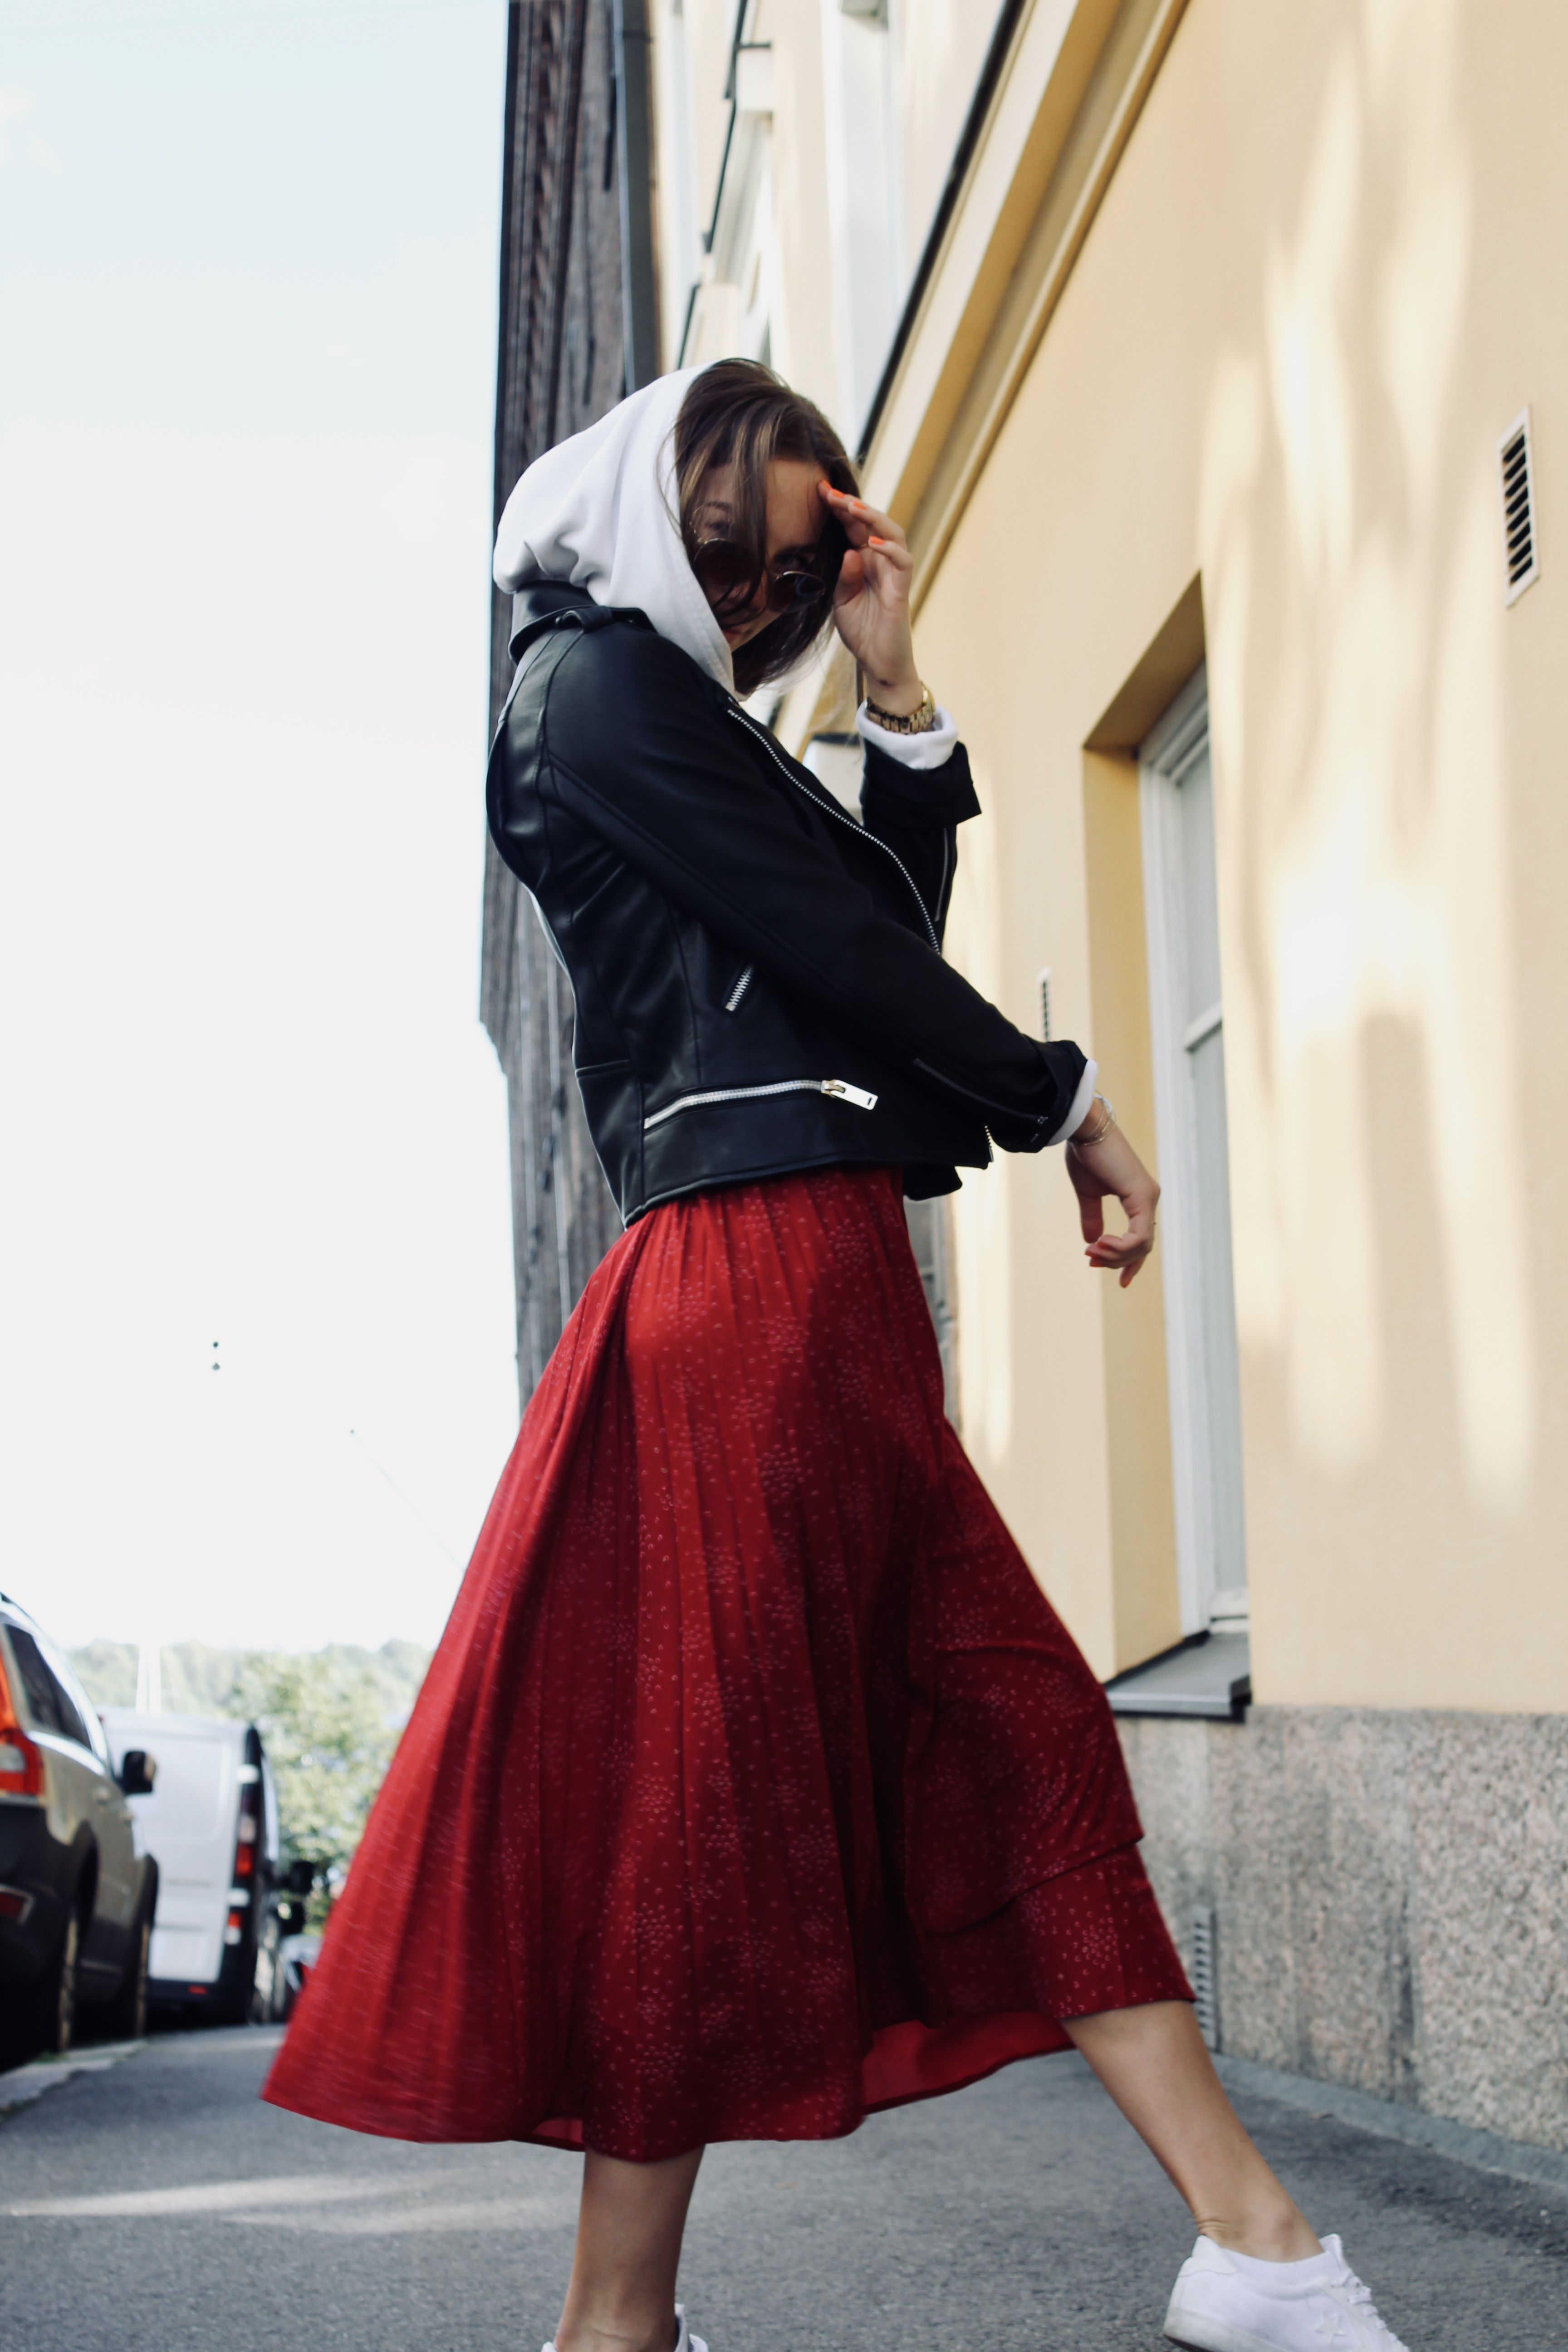 51bc36498 #skirt #red #longskirt #outfit #hoodie #autumn #fasion #cool #look #jacket  #spring #diy #redskirt